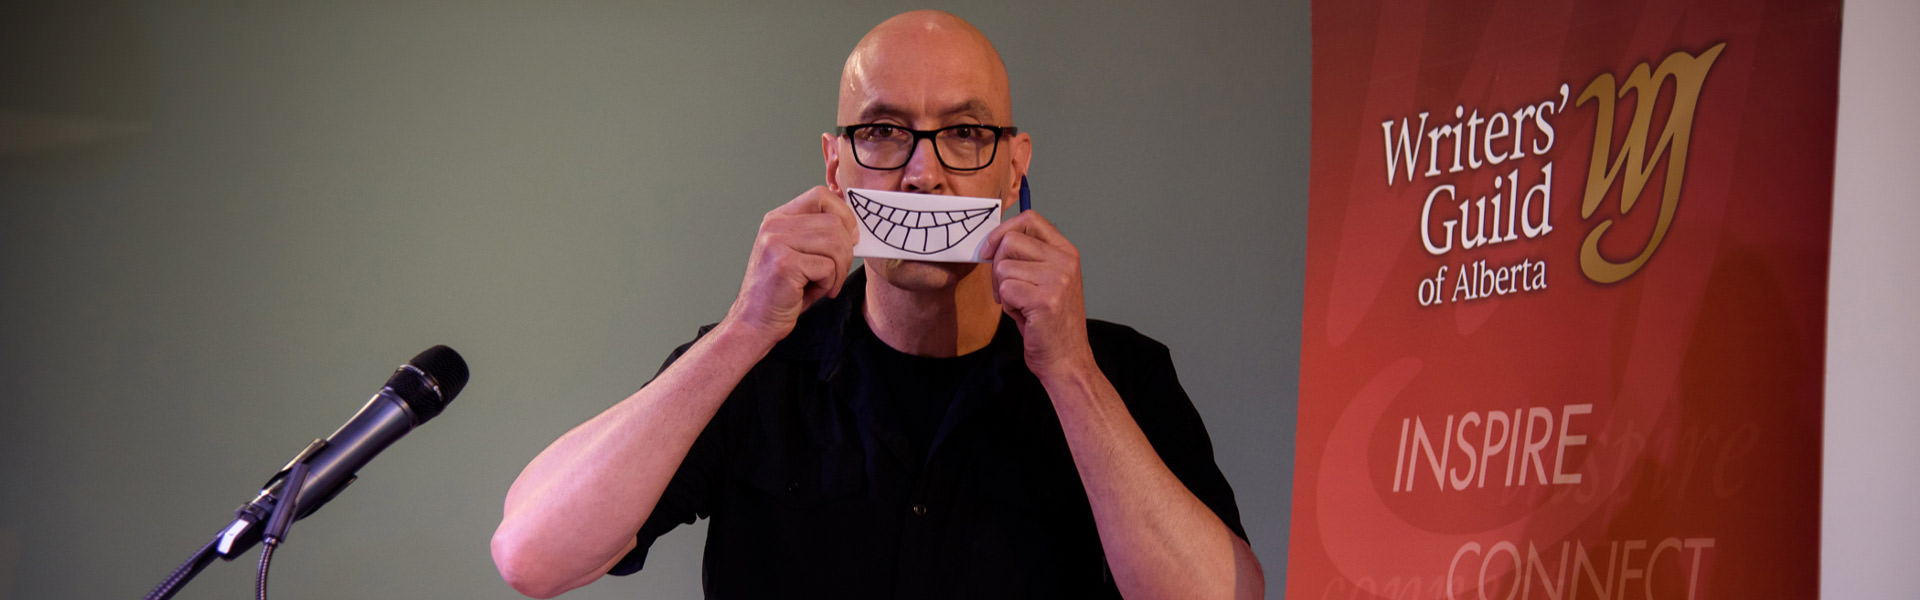 Dr. Patrick Finn poses holding a smile drawn on a piece of paper in front of his mouth.